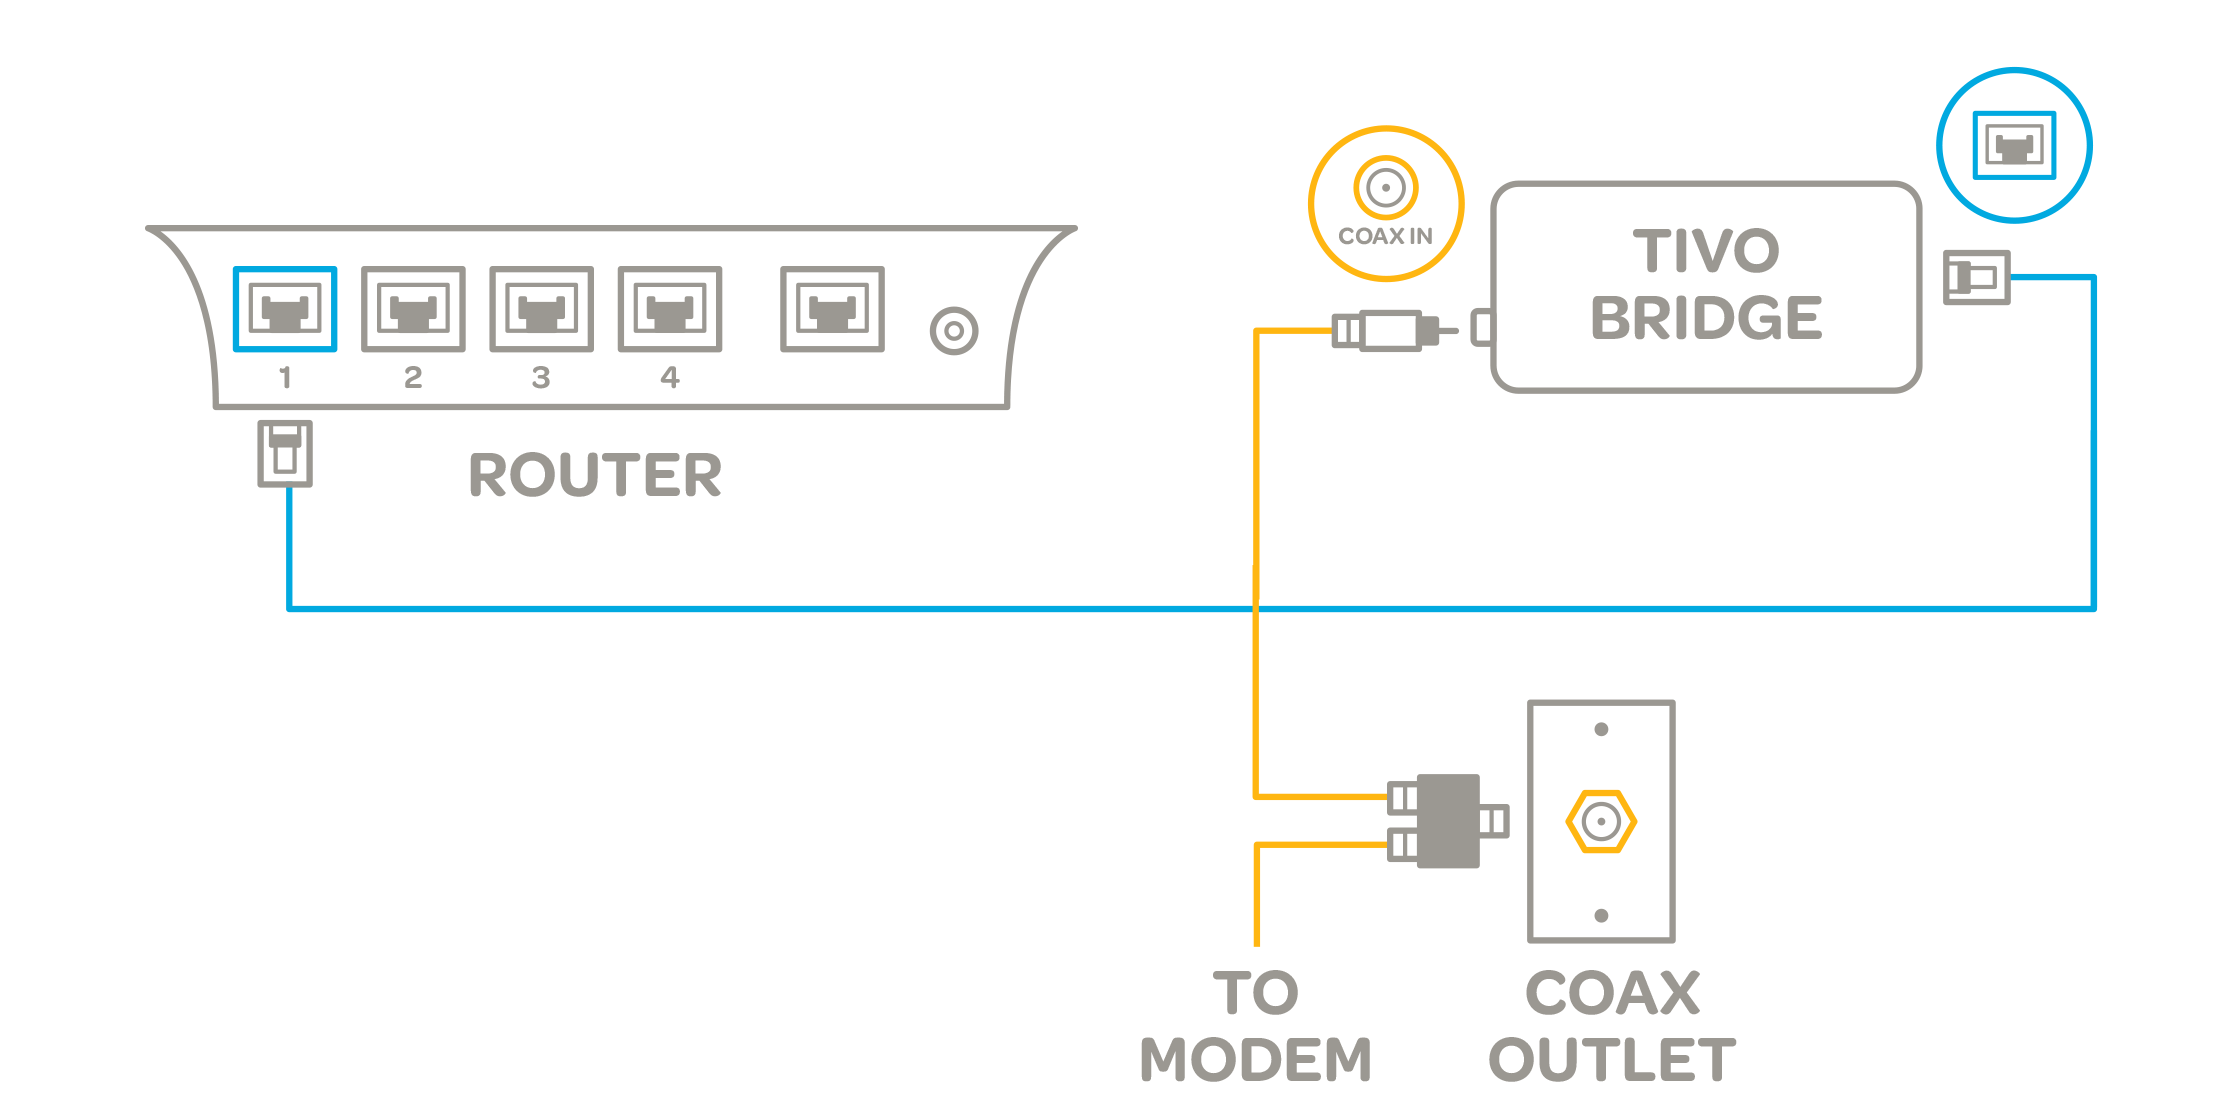 diagram showing router connecting over ethernet to tivo bridge, tivo bridge connecting over coax to modem and outlet